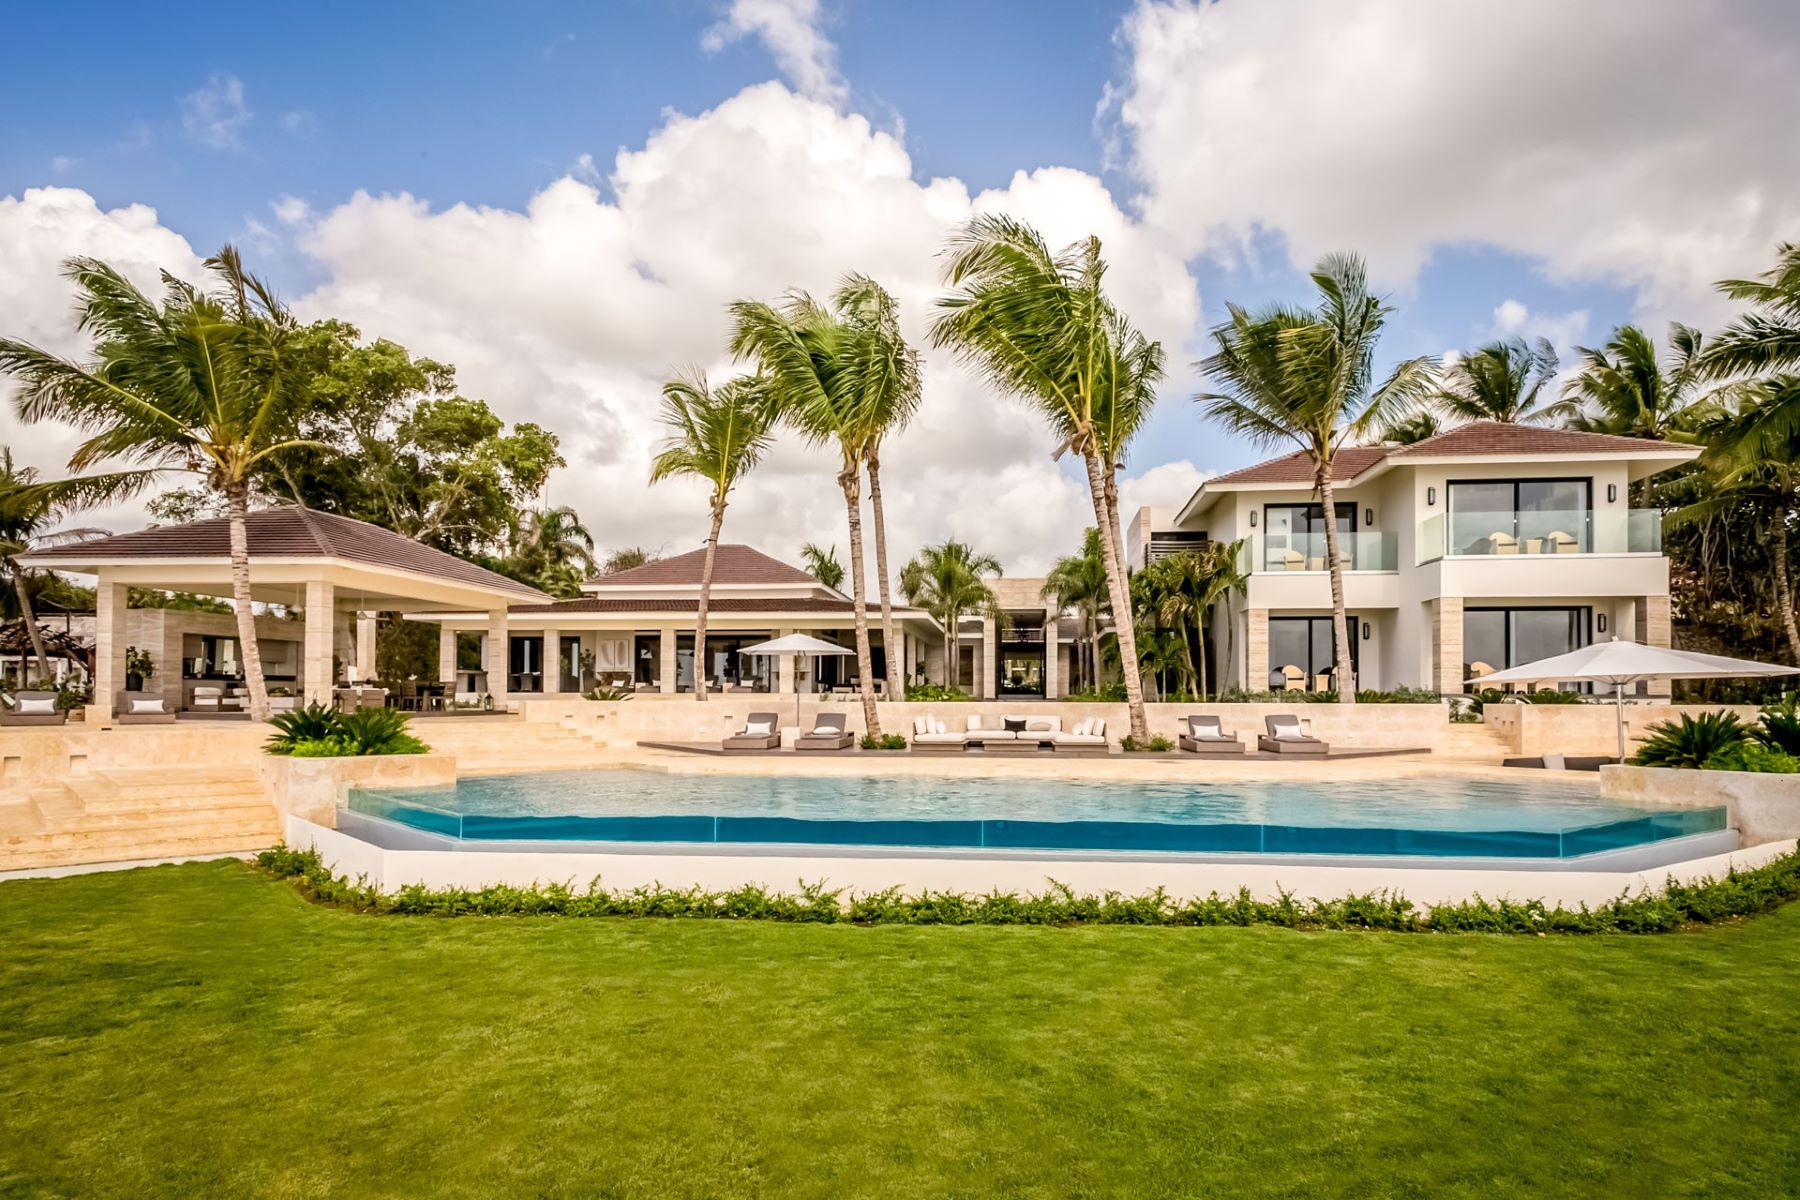 Single Family Home for Rent at Fantastic, Brand New and Fabulous with a Private Beach Casa De Campo, La Romana Dominican Republic